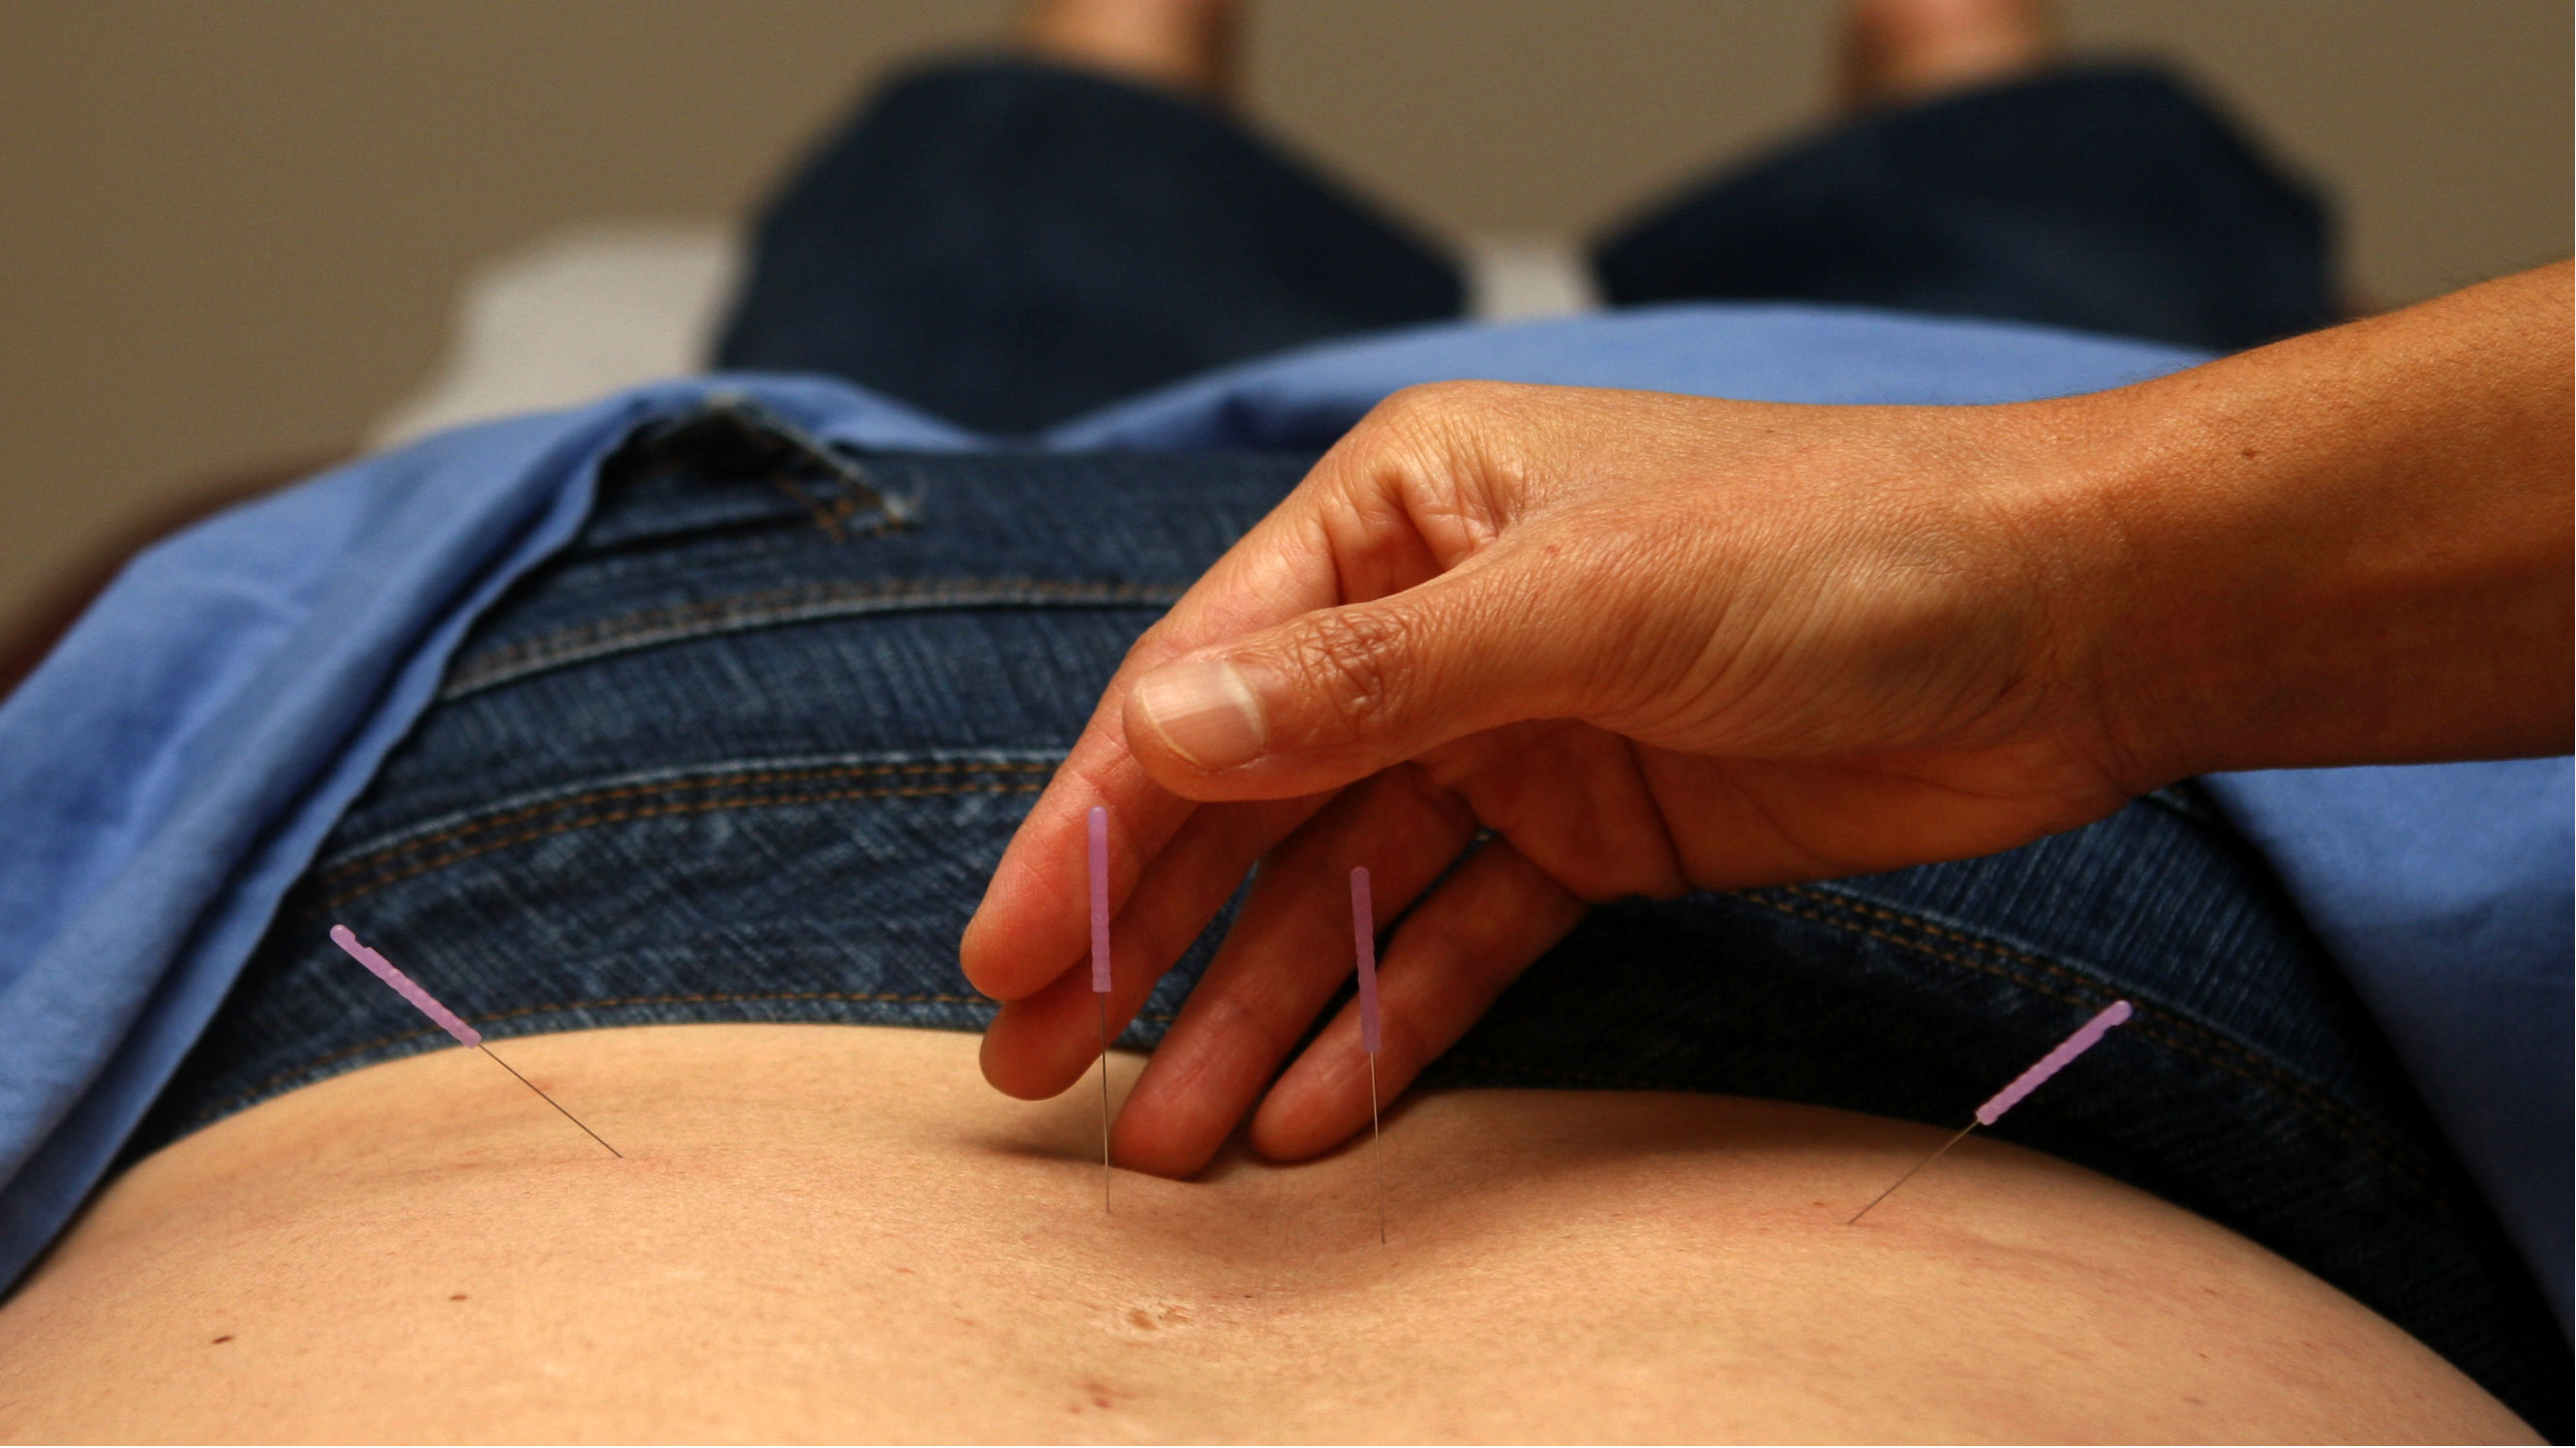 This Oct. 28, 2009 photo shows Christine Kinsella, a licensed acupuncturist and Chinese Herbalist, treating patient Cynde Durnford-Branecki during an acupuncture treatment in San Diego. Durnford-Branecki prefers acupuncture to pain pills, and her insurance covers treatments.